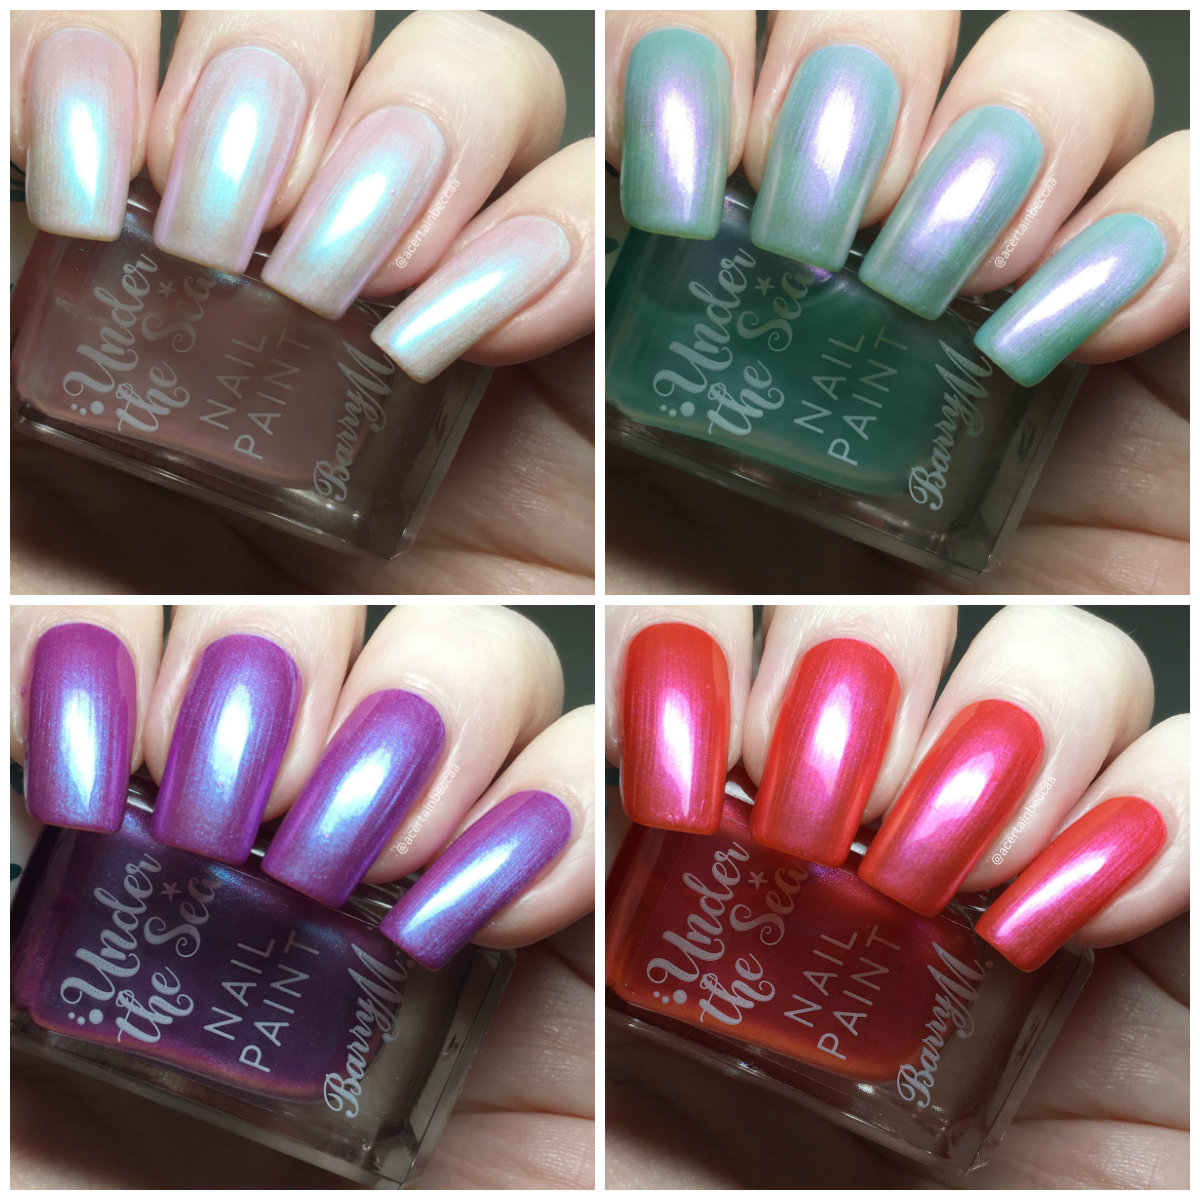 A Certain Becca Nails Barry M 2019 Under The Sea Additions